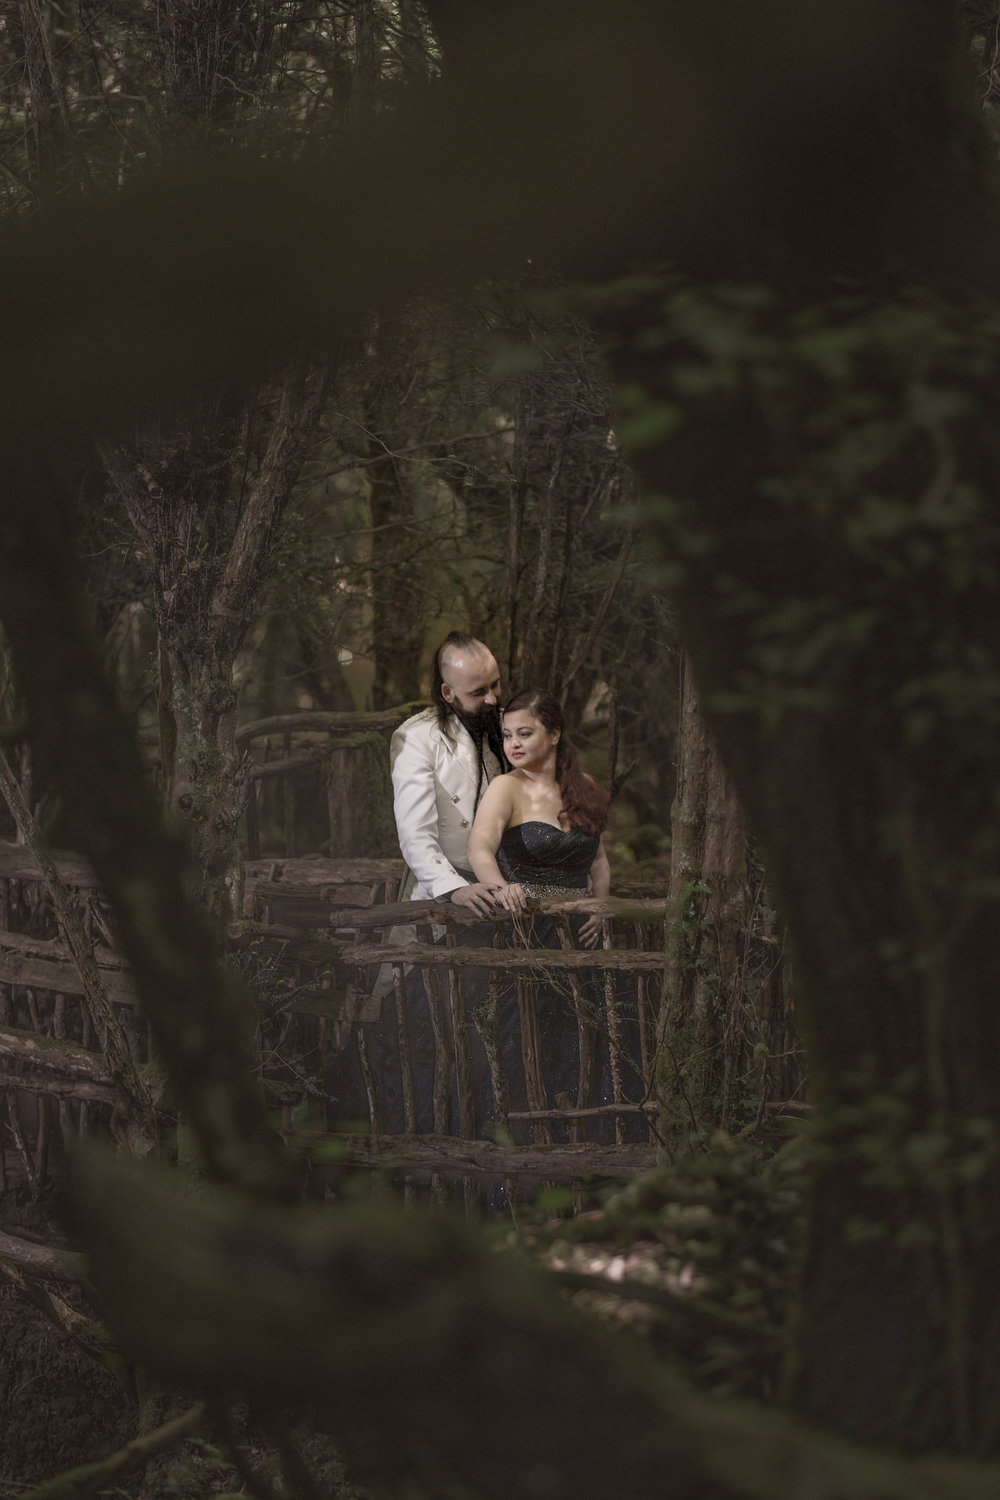 Puzzlewood-fairytale-fairy-forest-wood-prewedding-photoshoot-star-wars-couple-shoot-asian-wedding-photographer-natalia-smith-photography-3.jpg